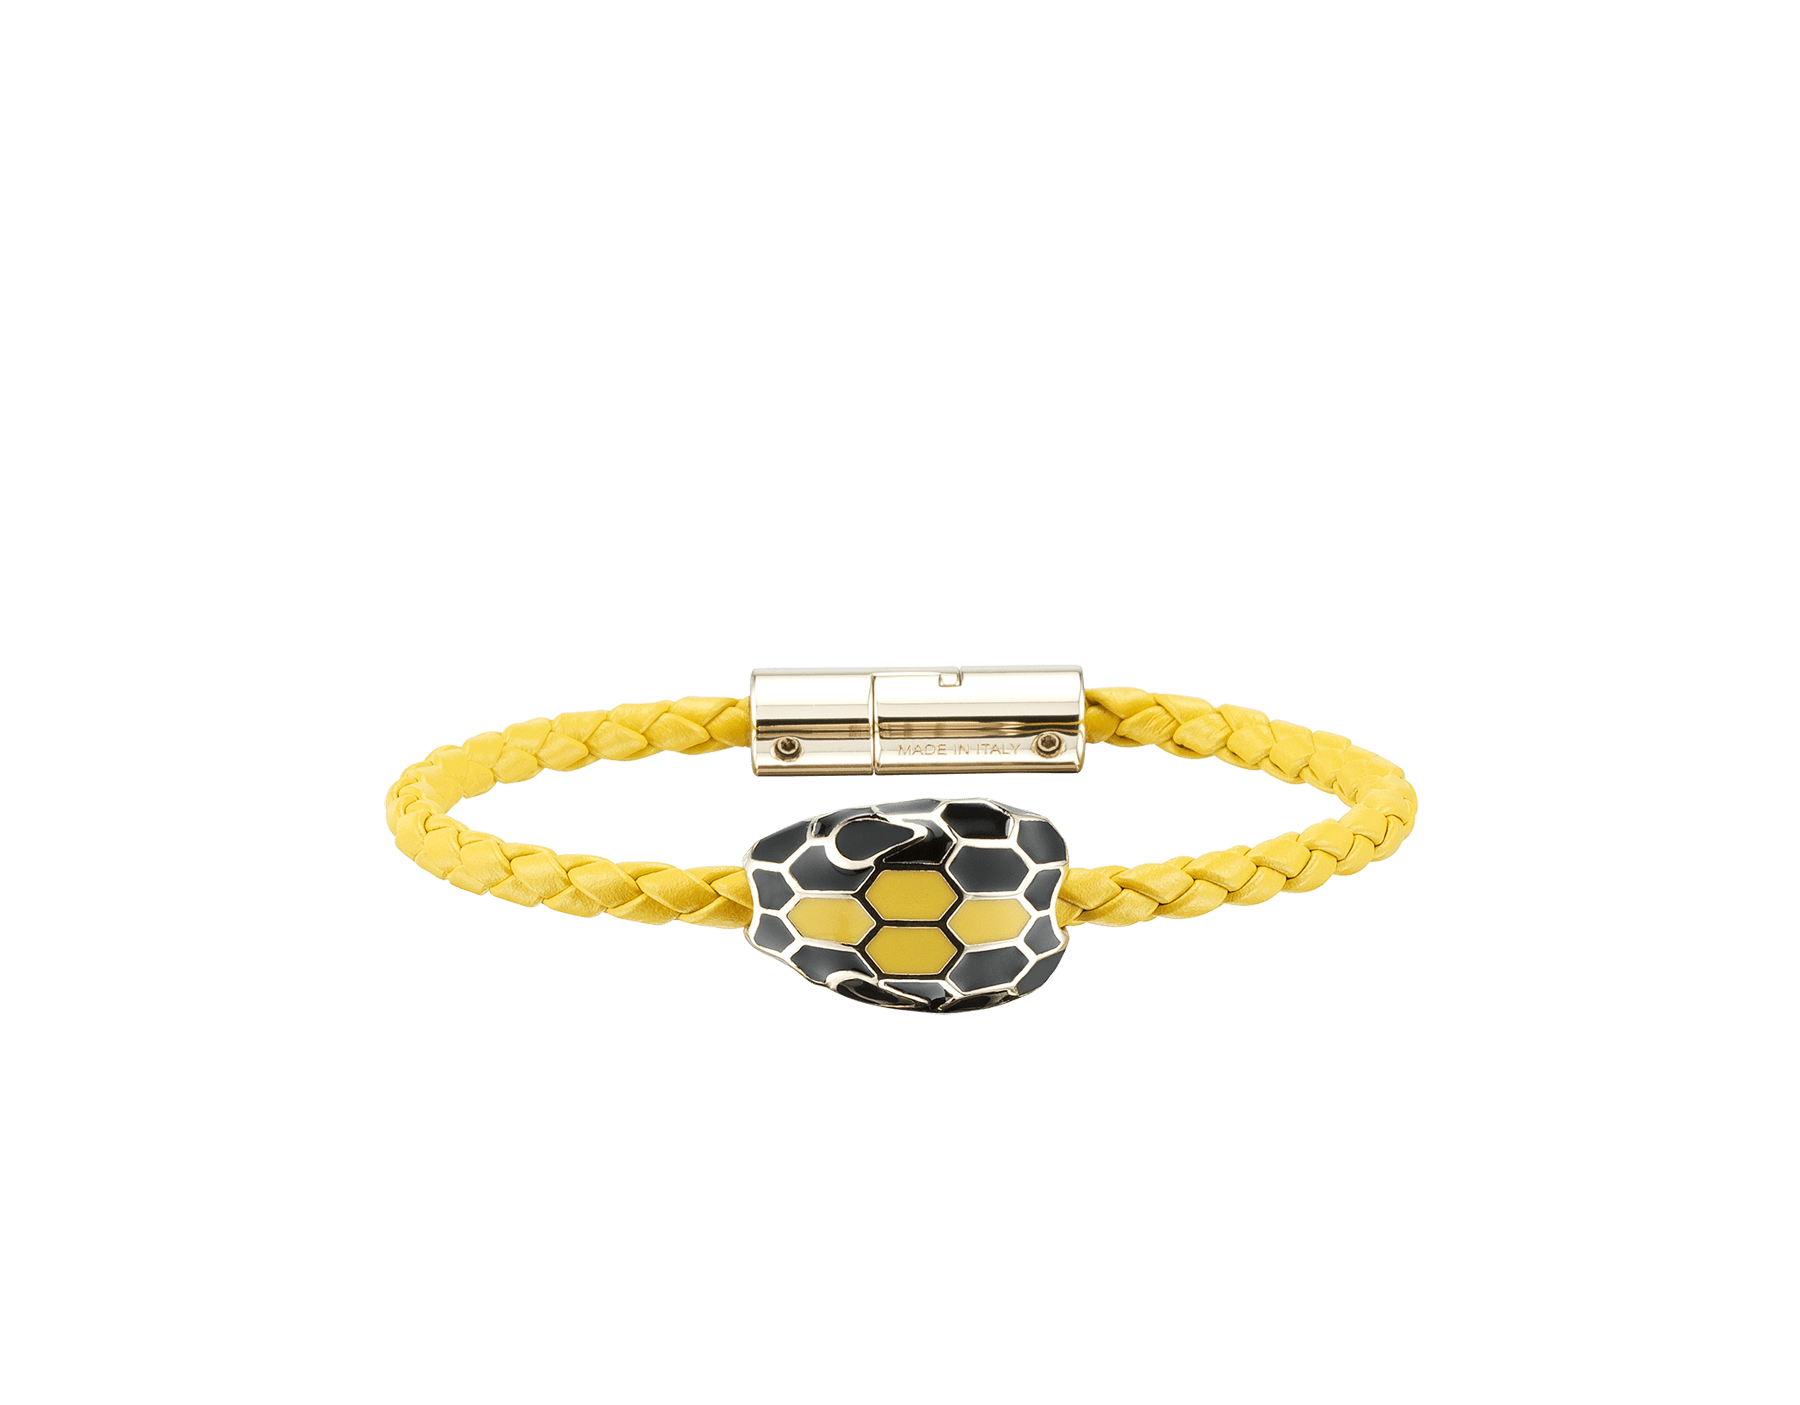 Serpenti Forever braid bracelet in daisy topaz woven calf leather with the iconic snakehead décor in black and daisy topaz enamel with seductive black enamel eyes. SerpBraid-WCL-DT image 1